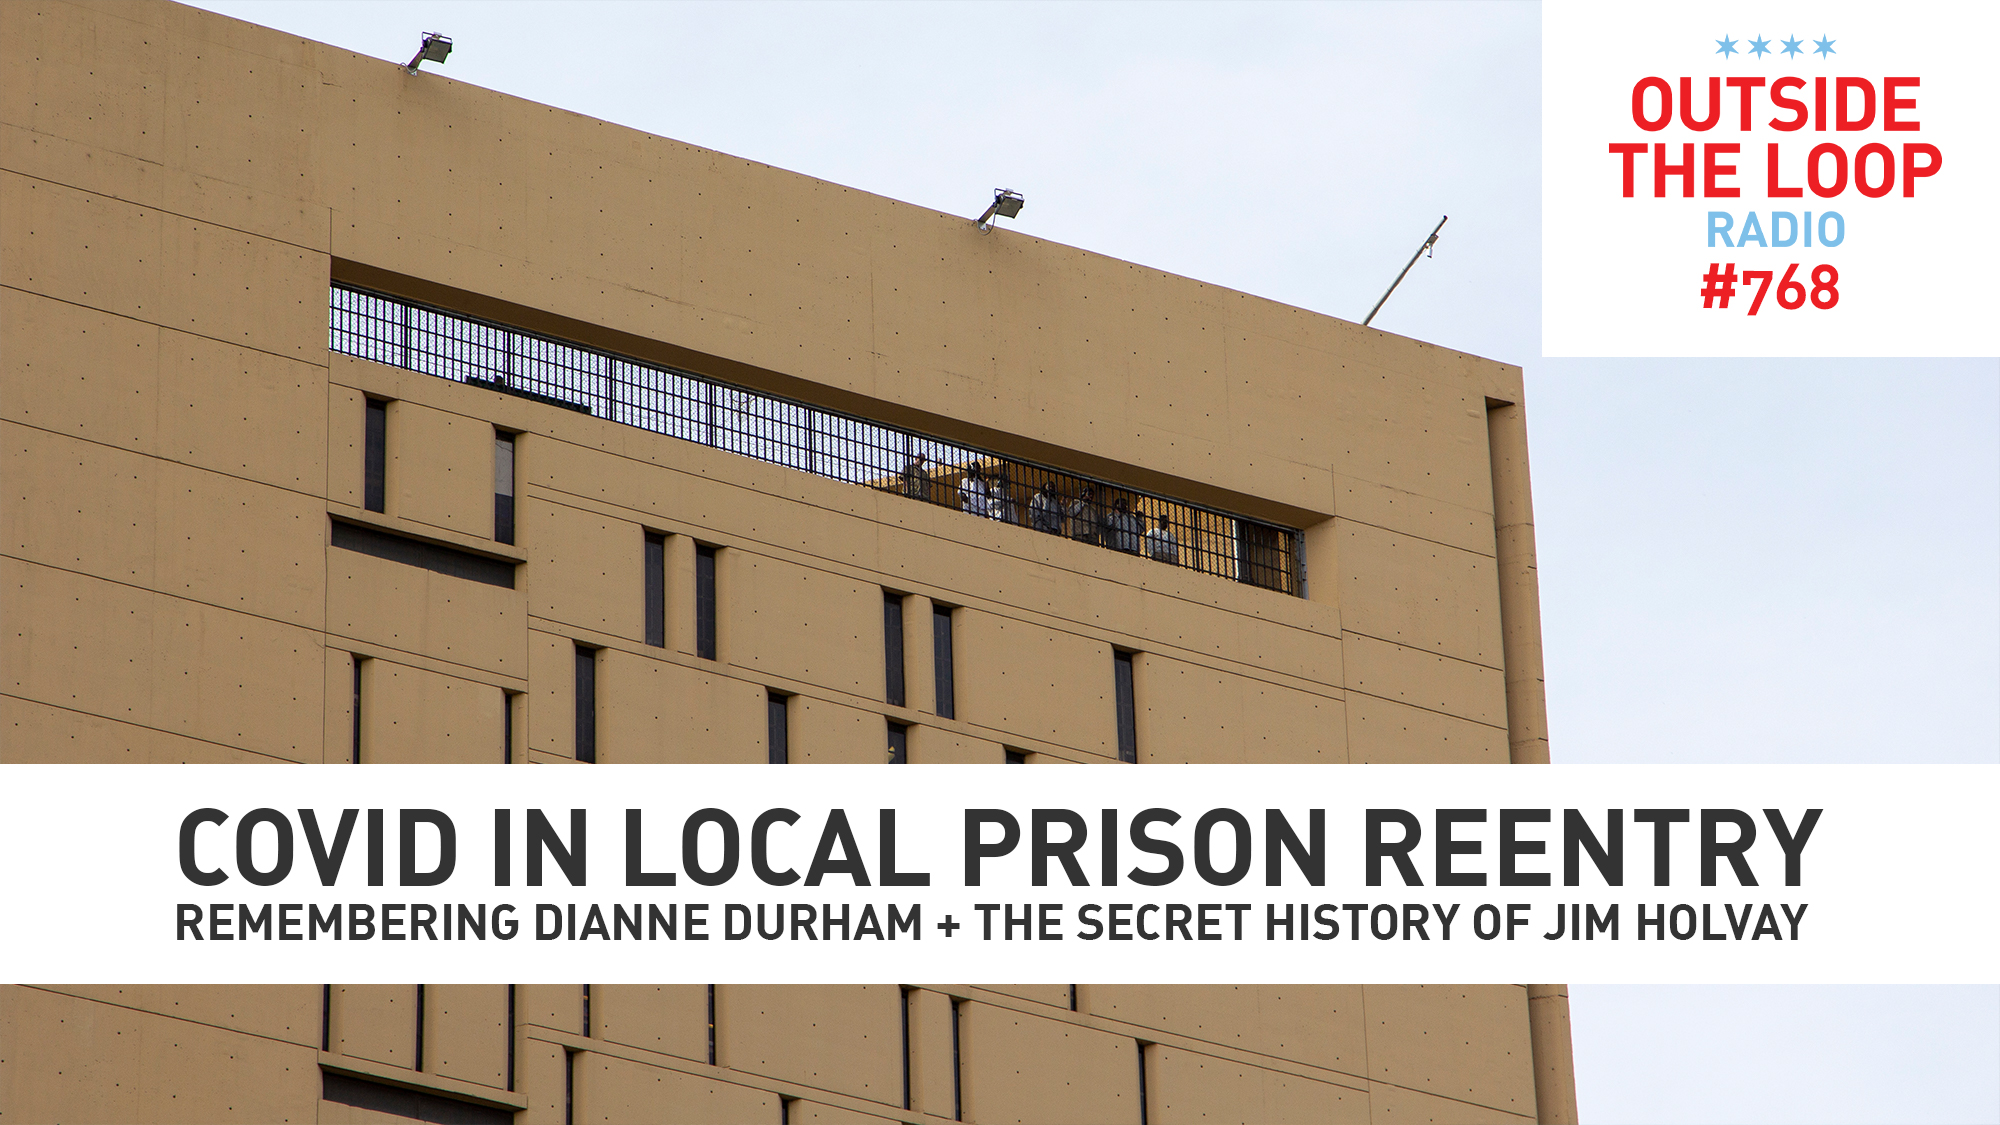 This week we learn how COVID-19 impacts local reentry facilities. (Photo credit: Mike Stephen/WGN Radio)